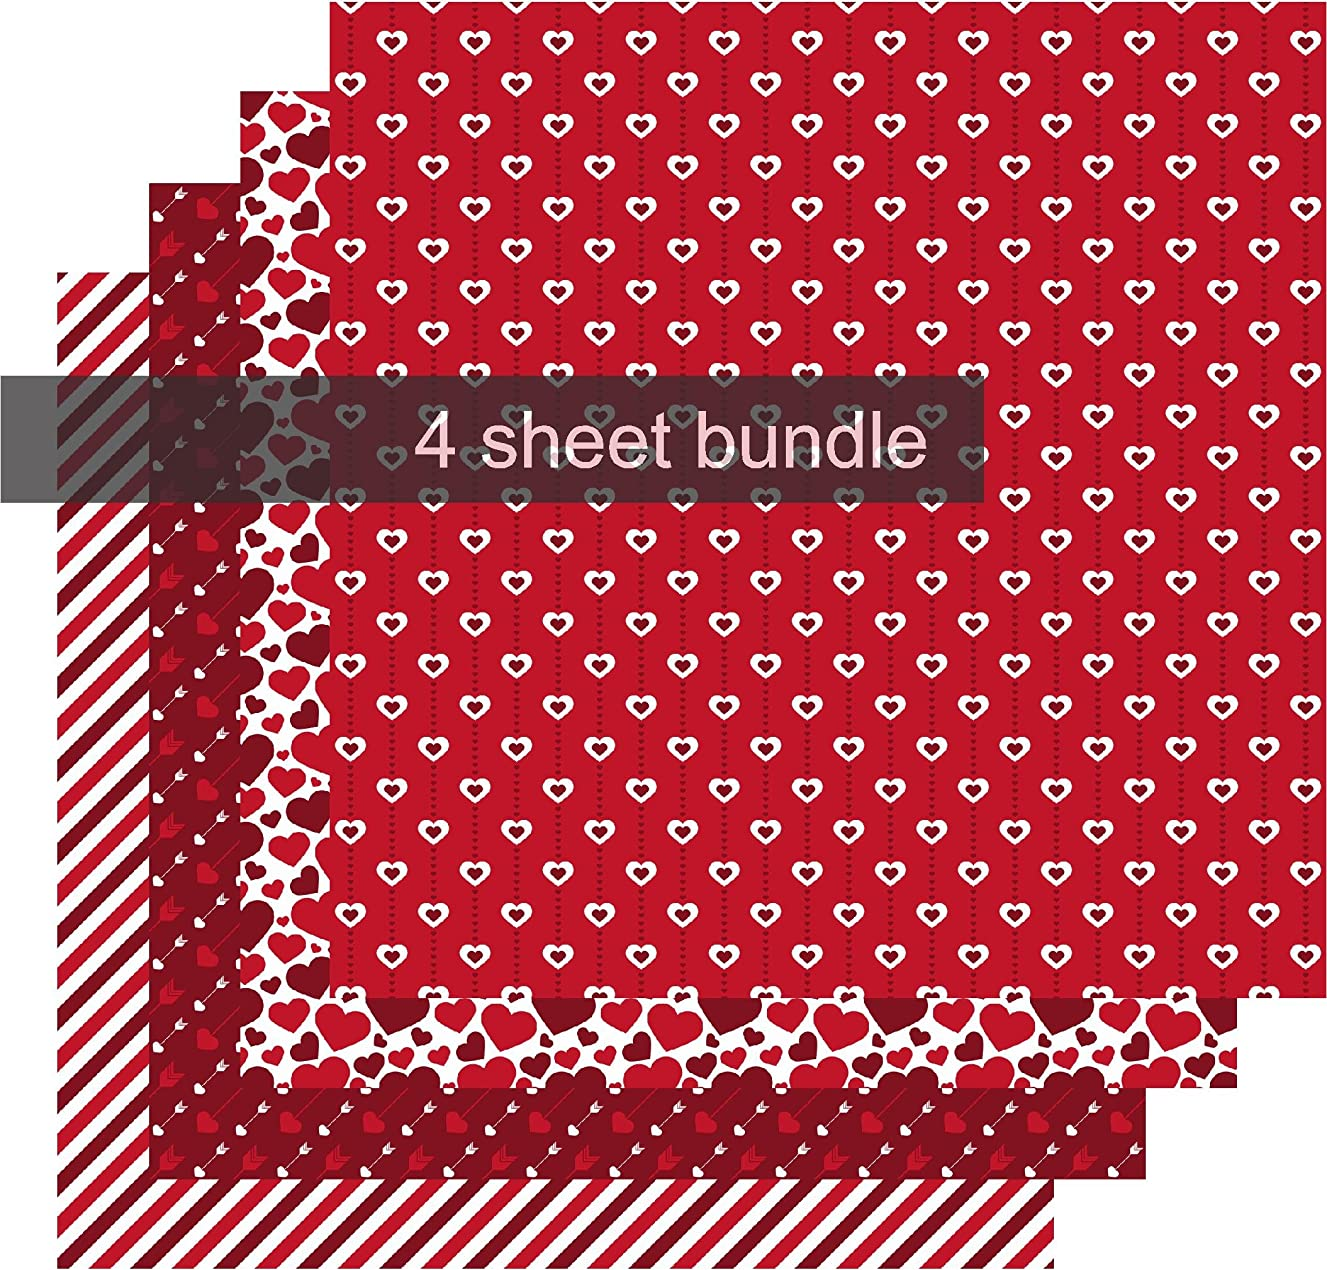 Valentines Day Pattern Permanent Vinyl, Red Patterned Vinyl, Heart Red White Brown, 4-12